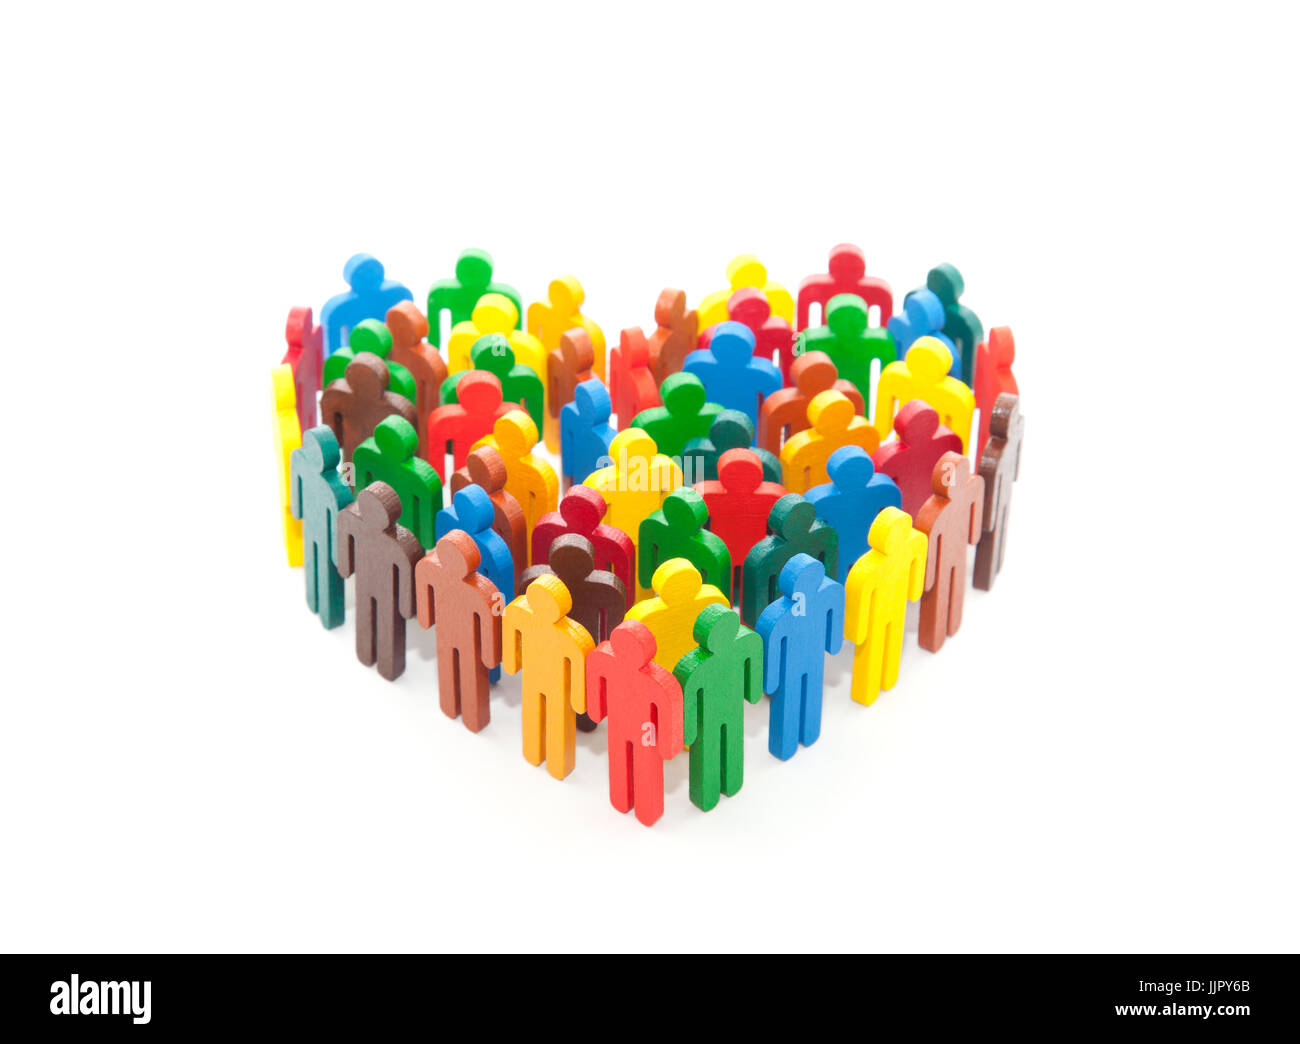 Group of colorful painted people figures in the shape of a heart - Stock Image